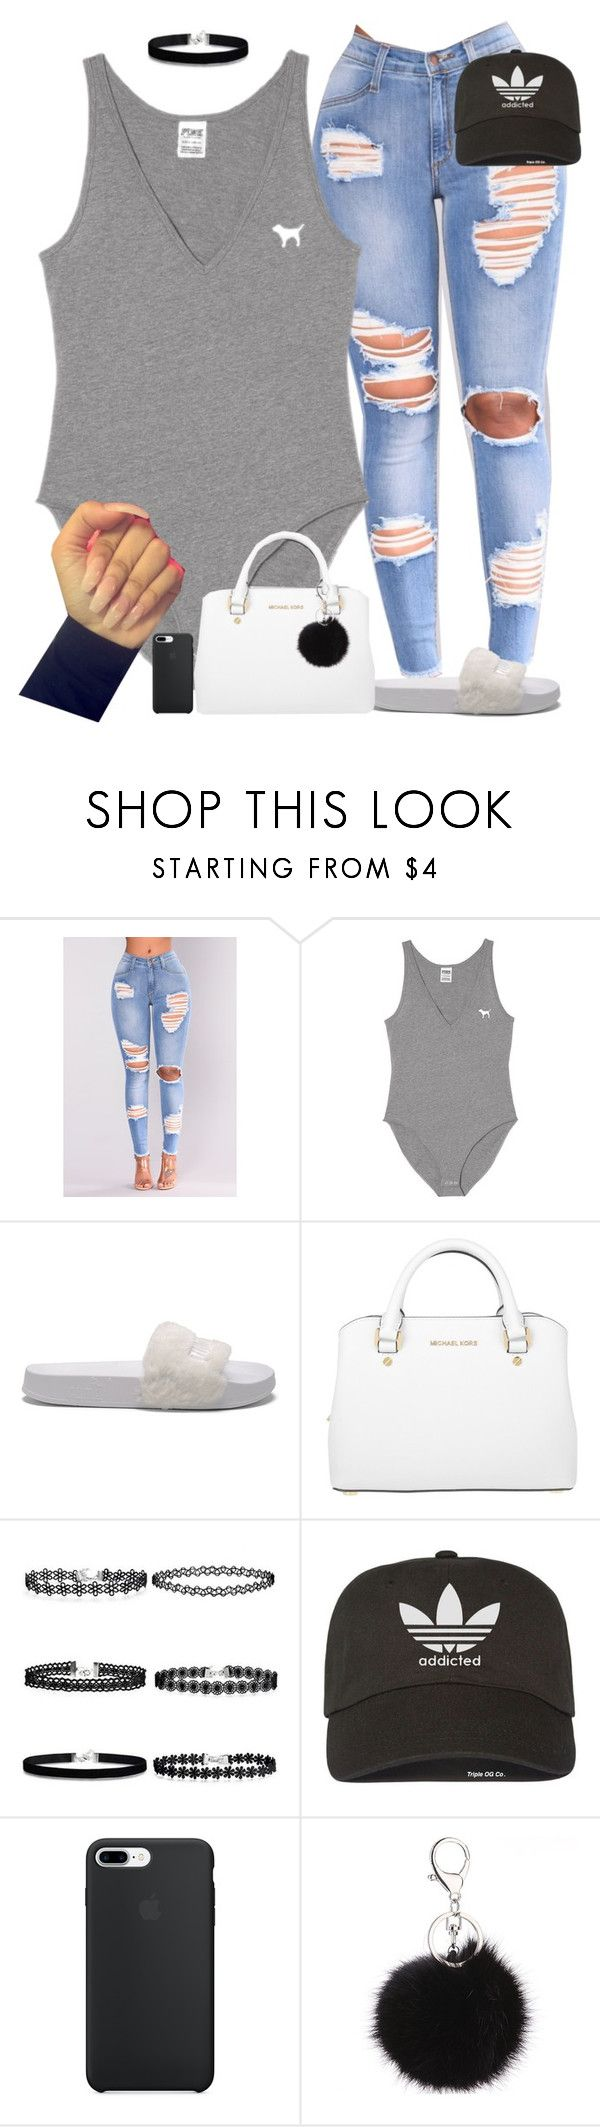 """Basic hoe‍♀️"" by princessaesthetic ❤ liked on Polyvore featuring NESSA, Puma, Michael Kors and adidas"